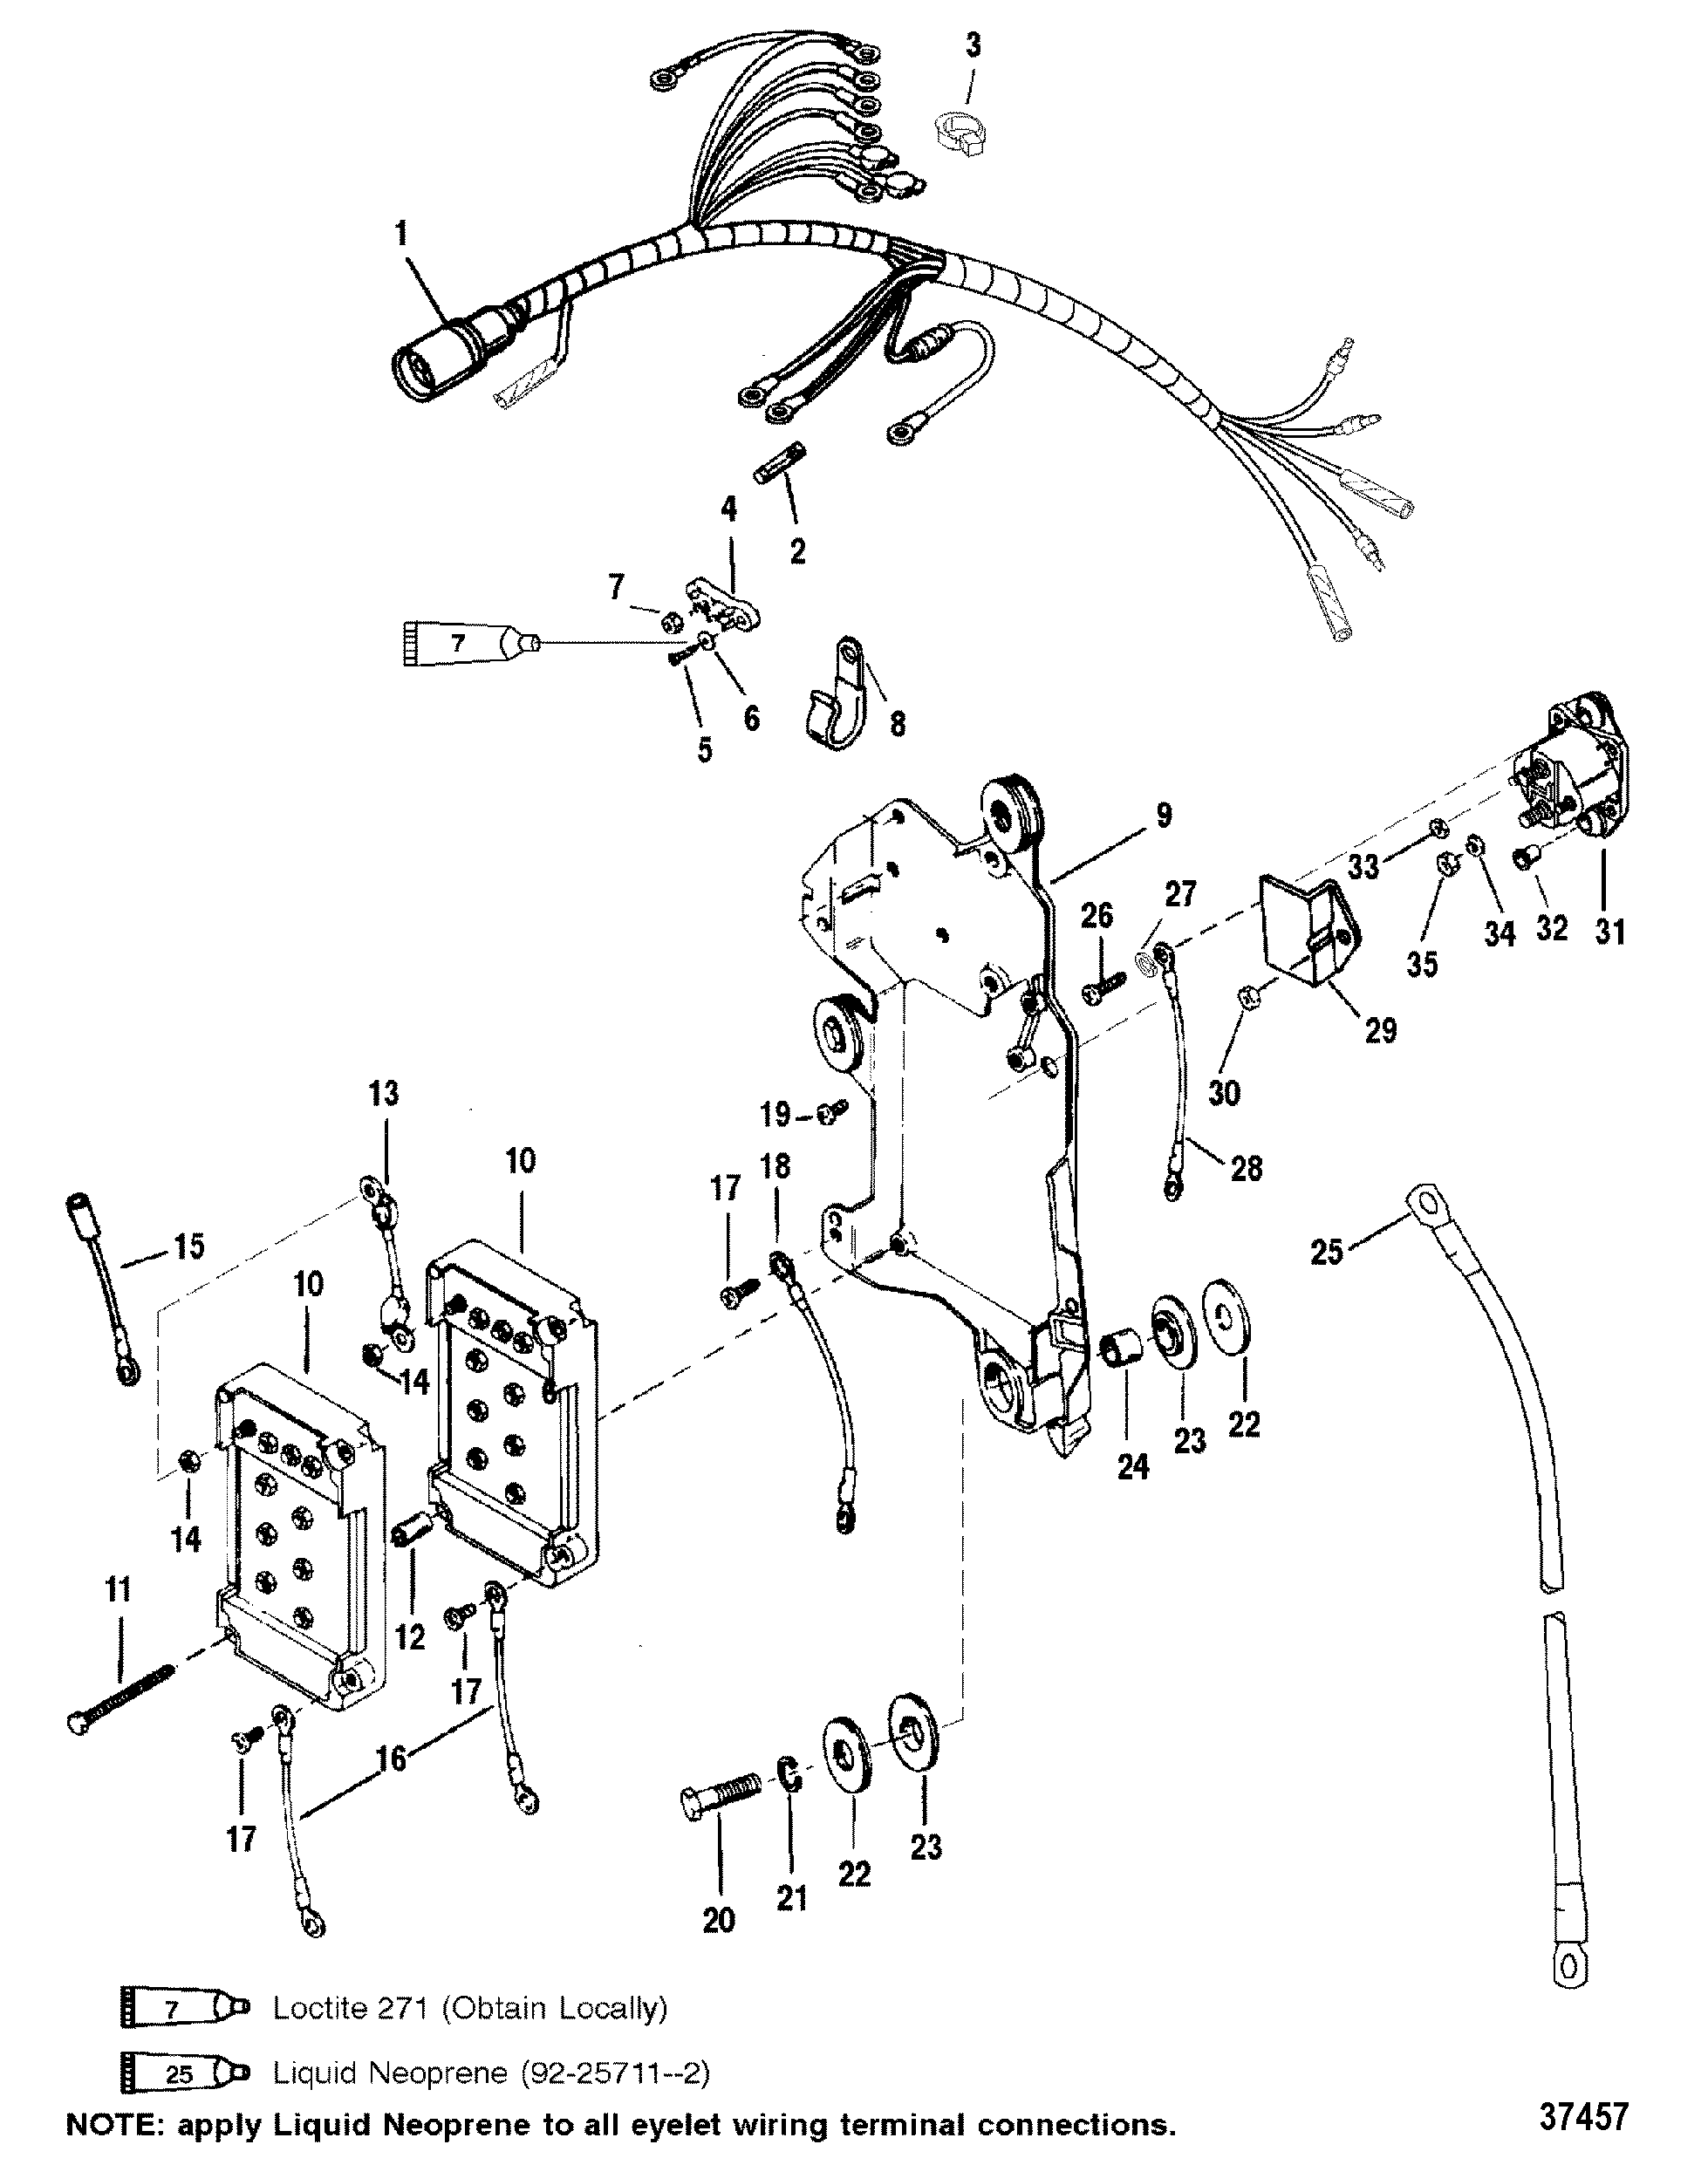 37457 wiring harness starter solenoid for mariner mercury 150 175 200 efi mercury 14 pin wiring harness diagram at gsmx.co